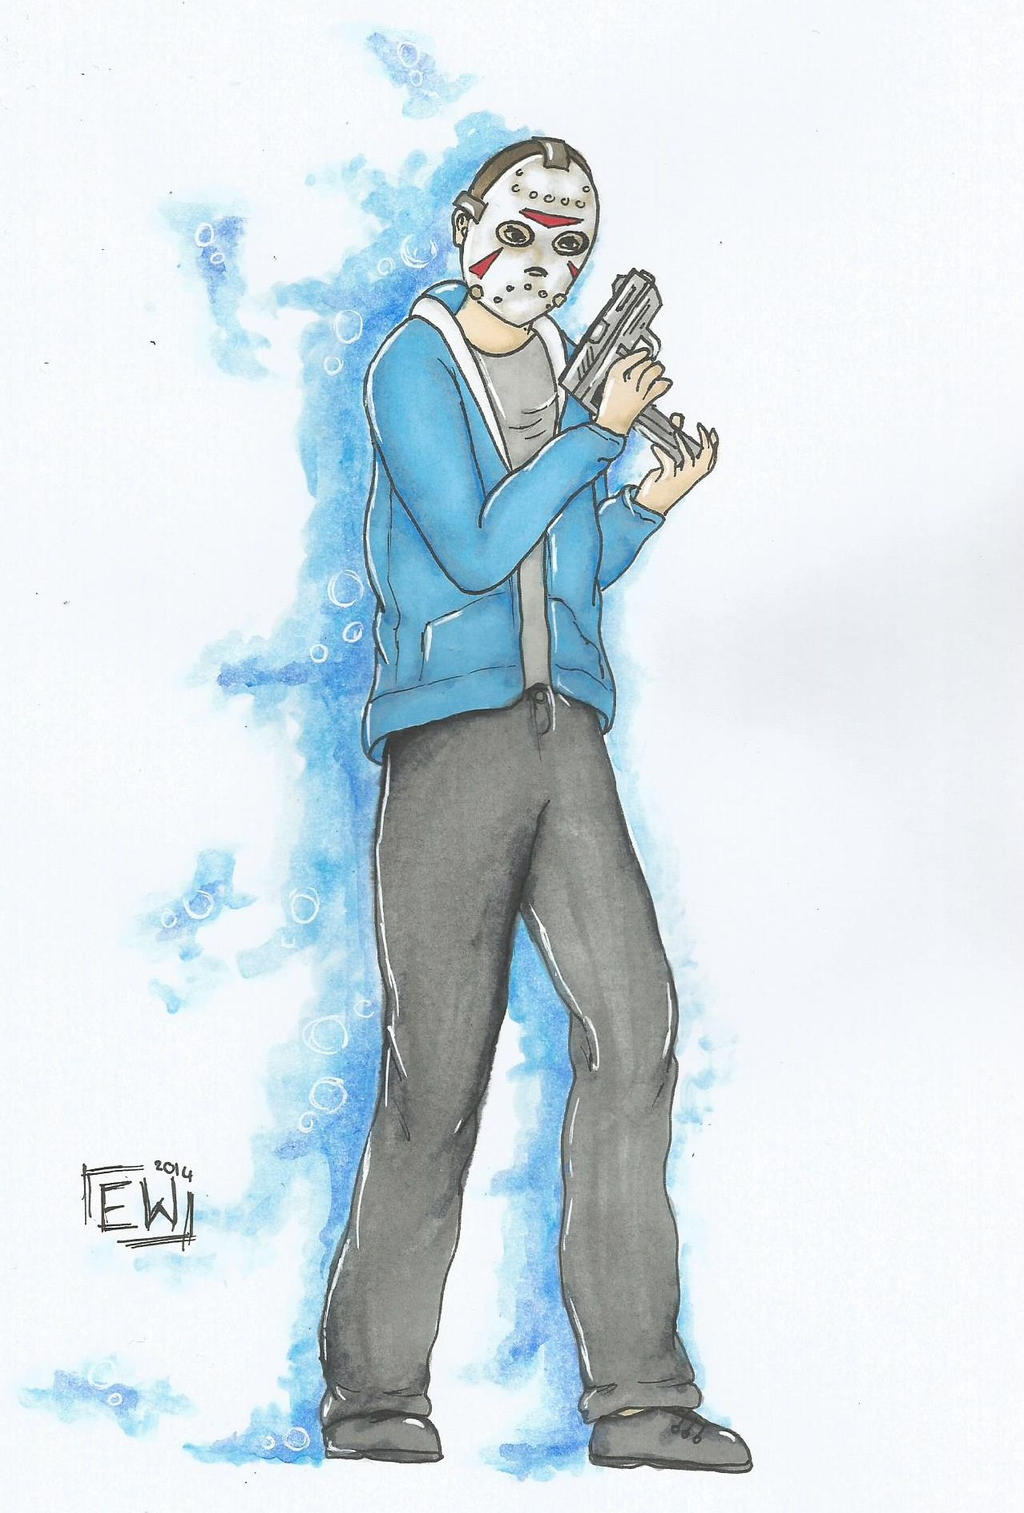 H20 Delirious by fleurescience on DeviantArt H20 Delirious Drawings